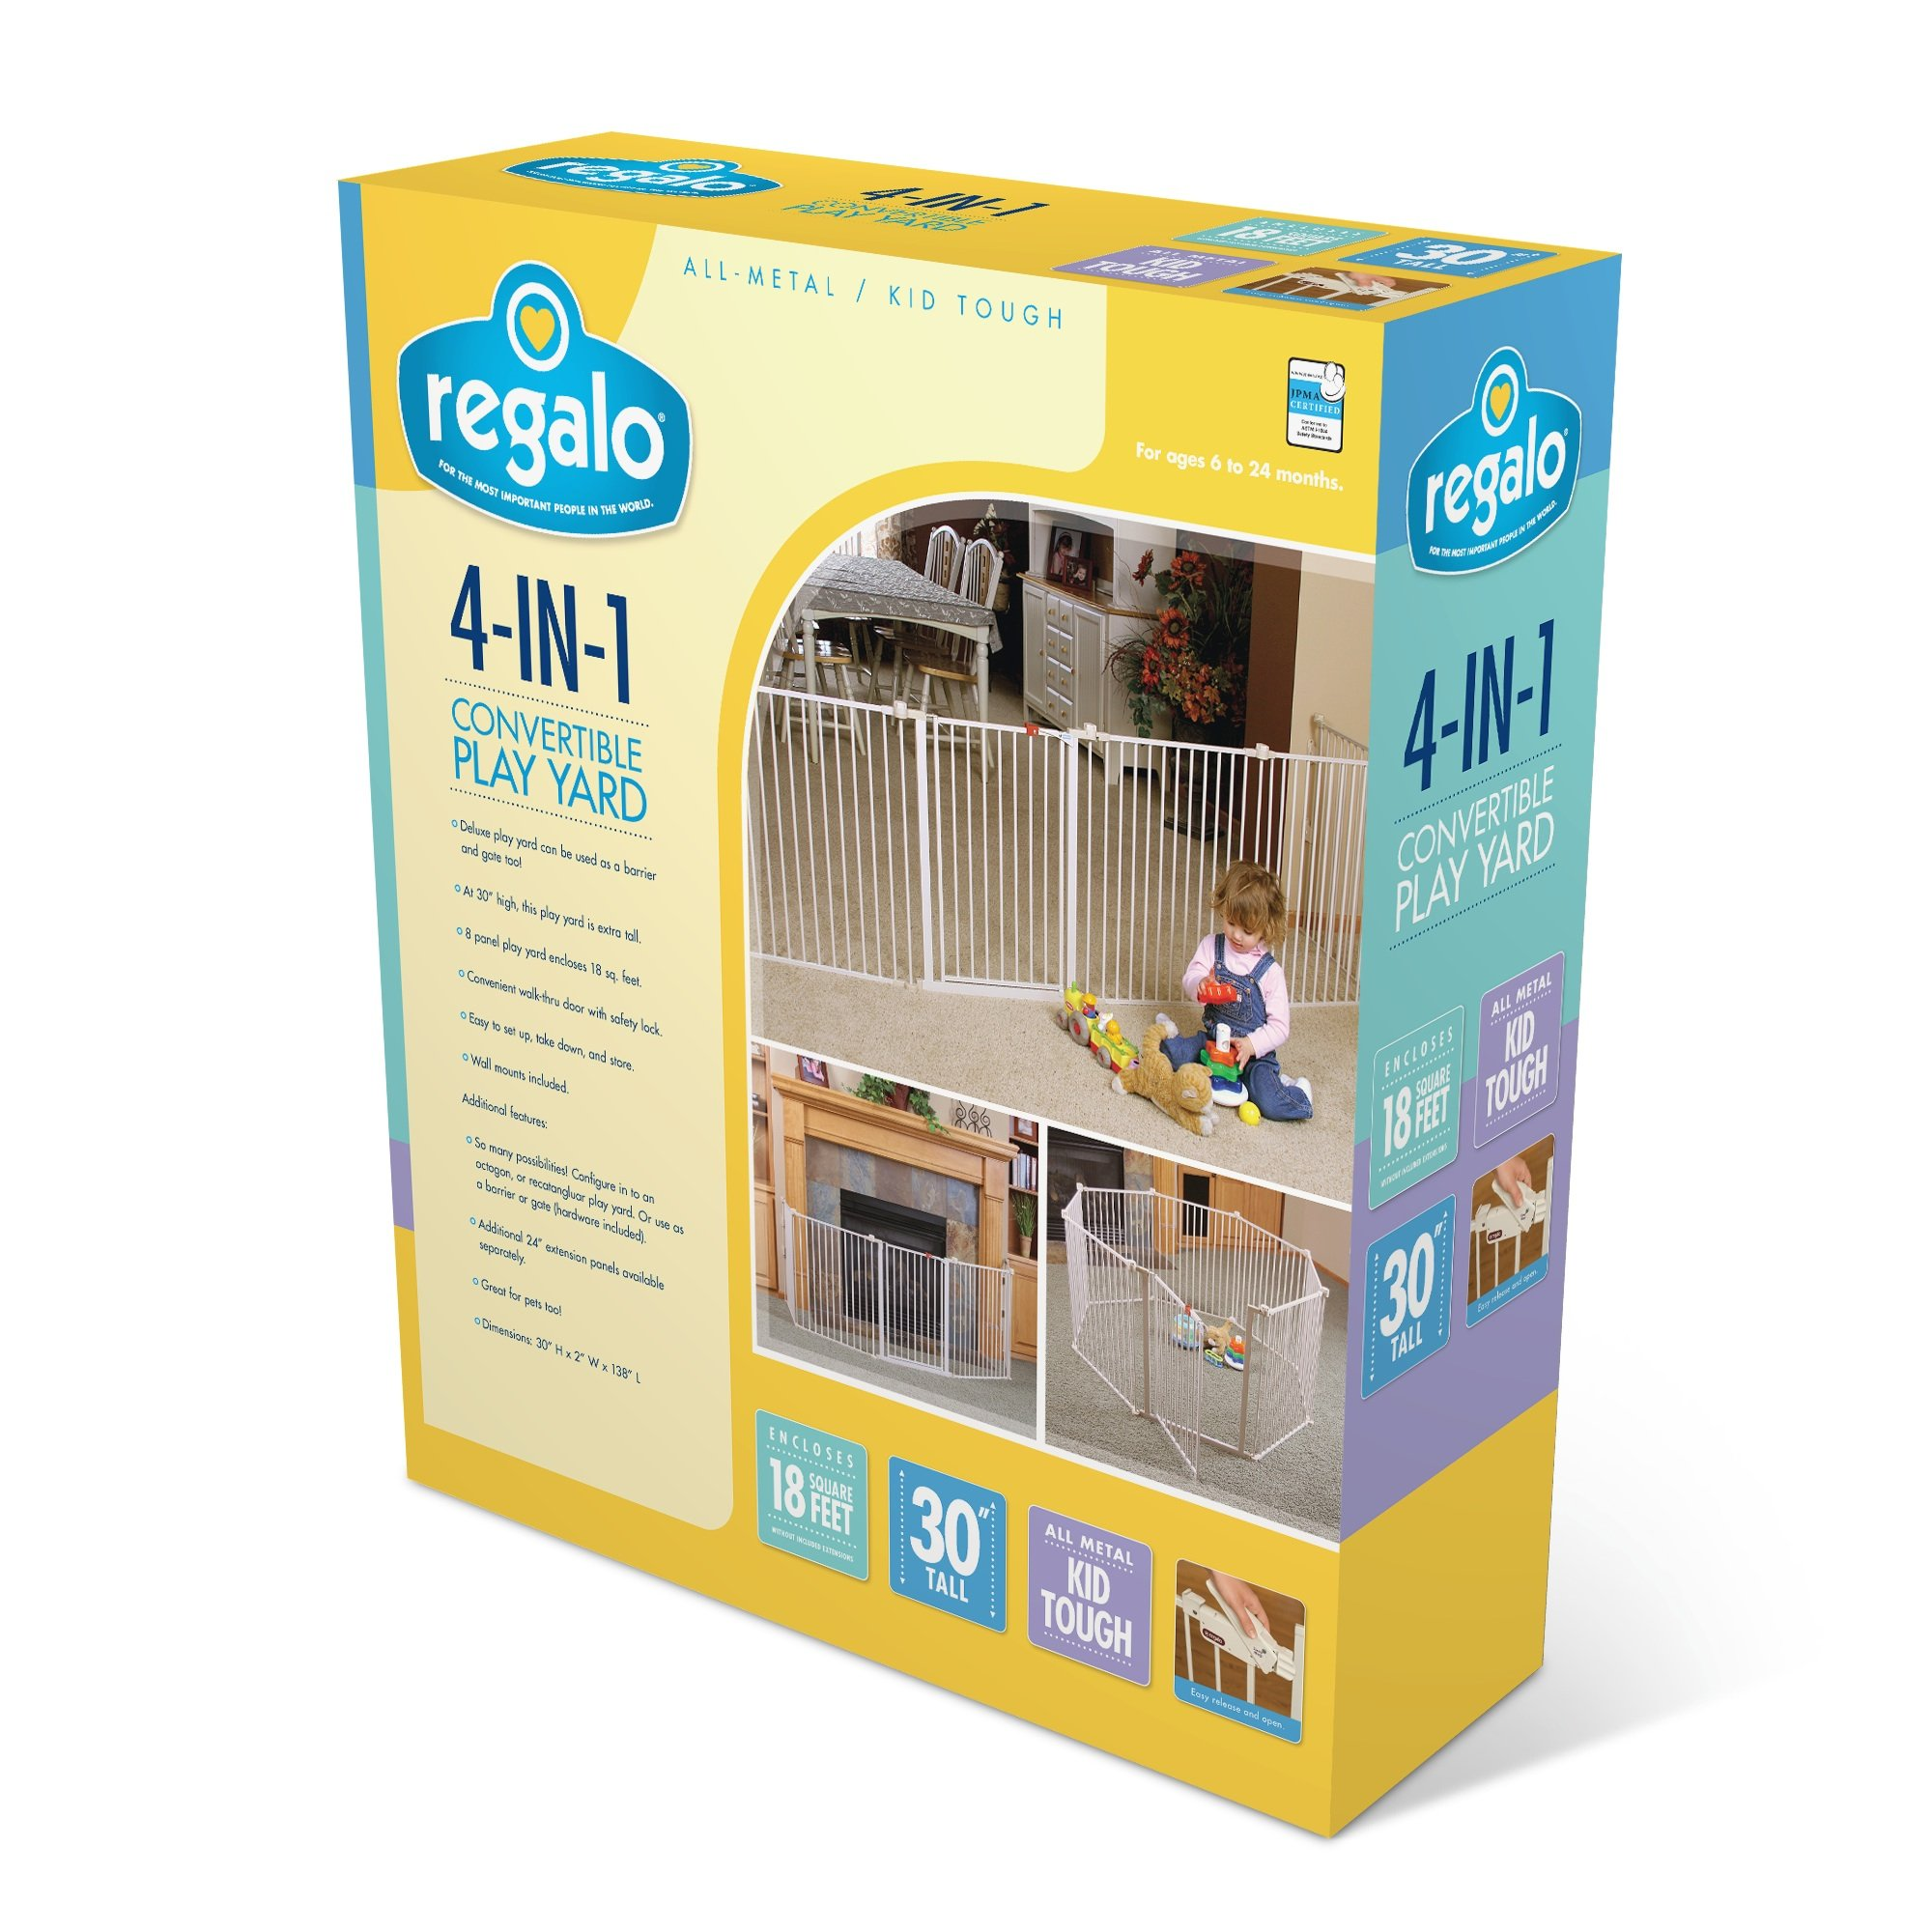 Regalo 192-Inch Super Wide Adjustable Baby Gate and Play Yard, 4-In-1, Bonus Kit, Includes 4 Pack of Wall Mounts by Regalo (Image #8)